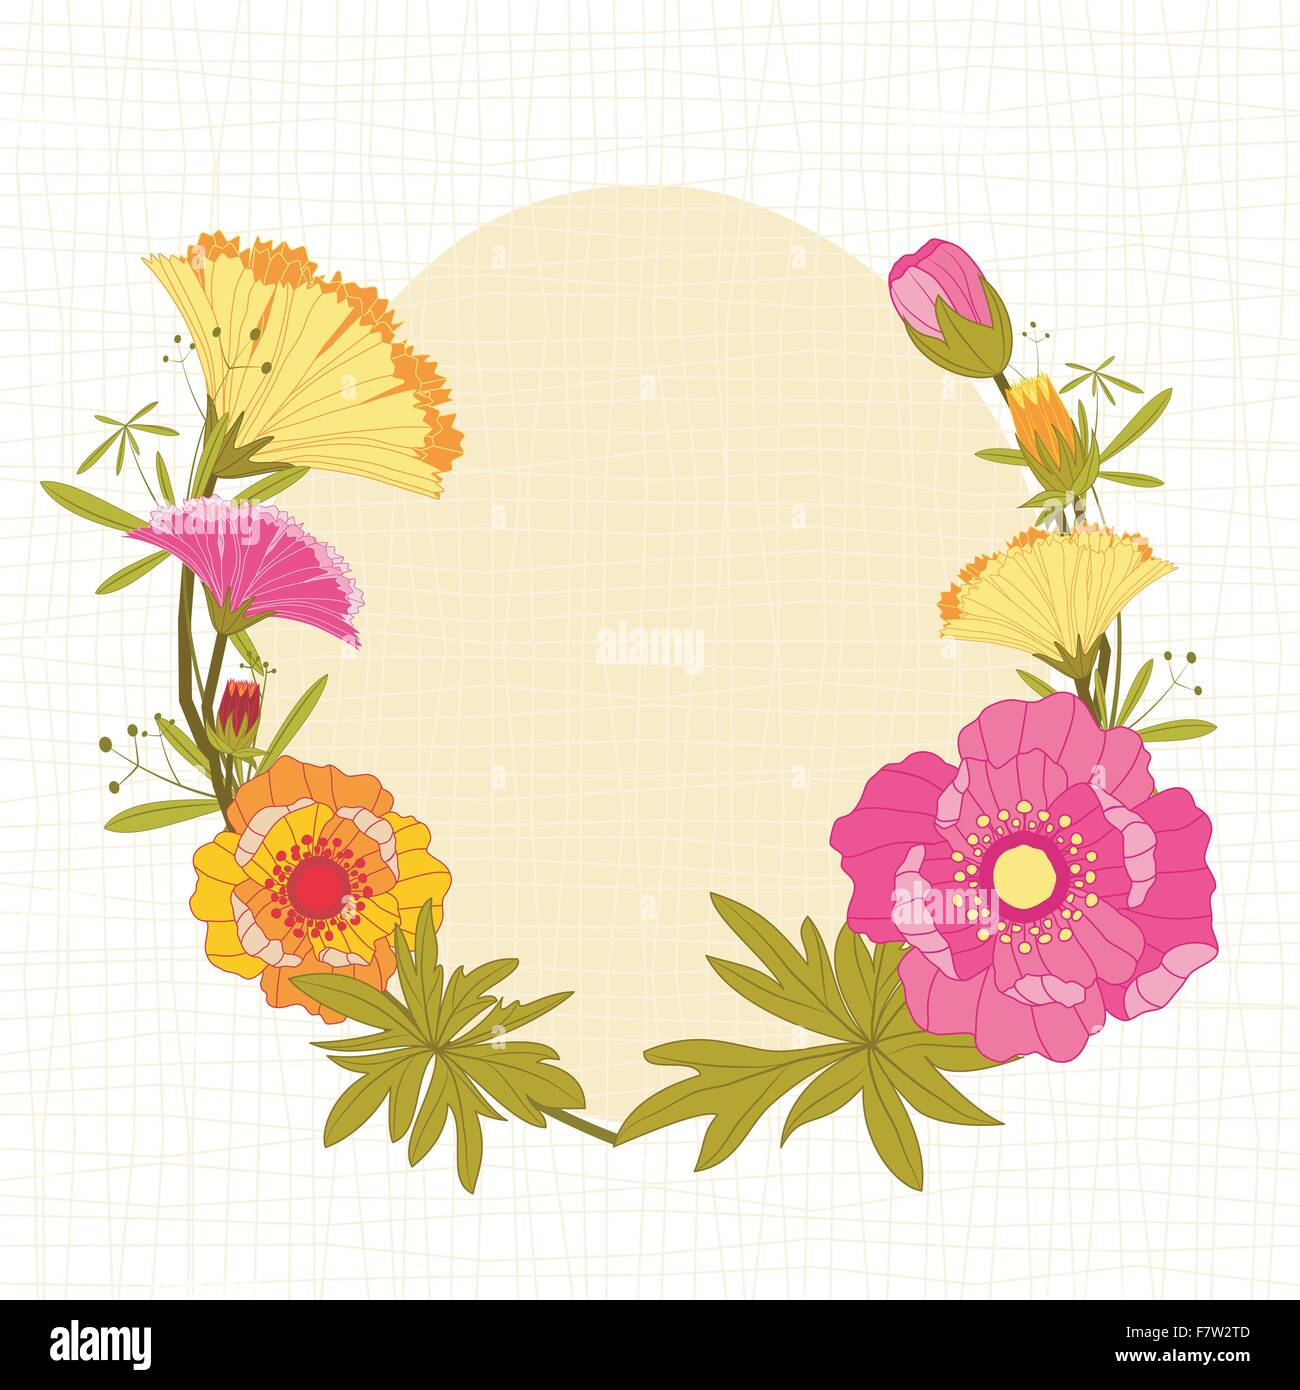 Springtime Colorful Flower Background - Stock Vector